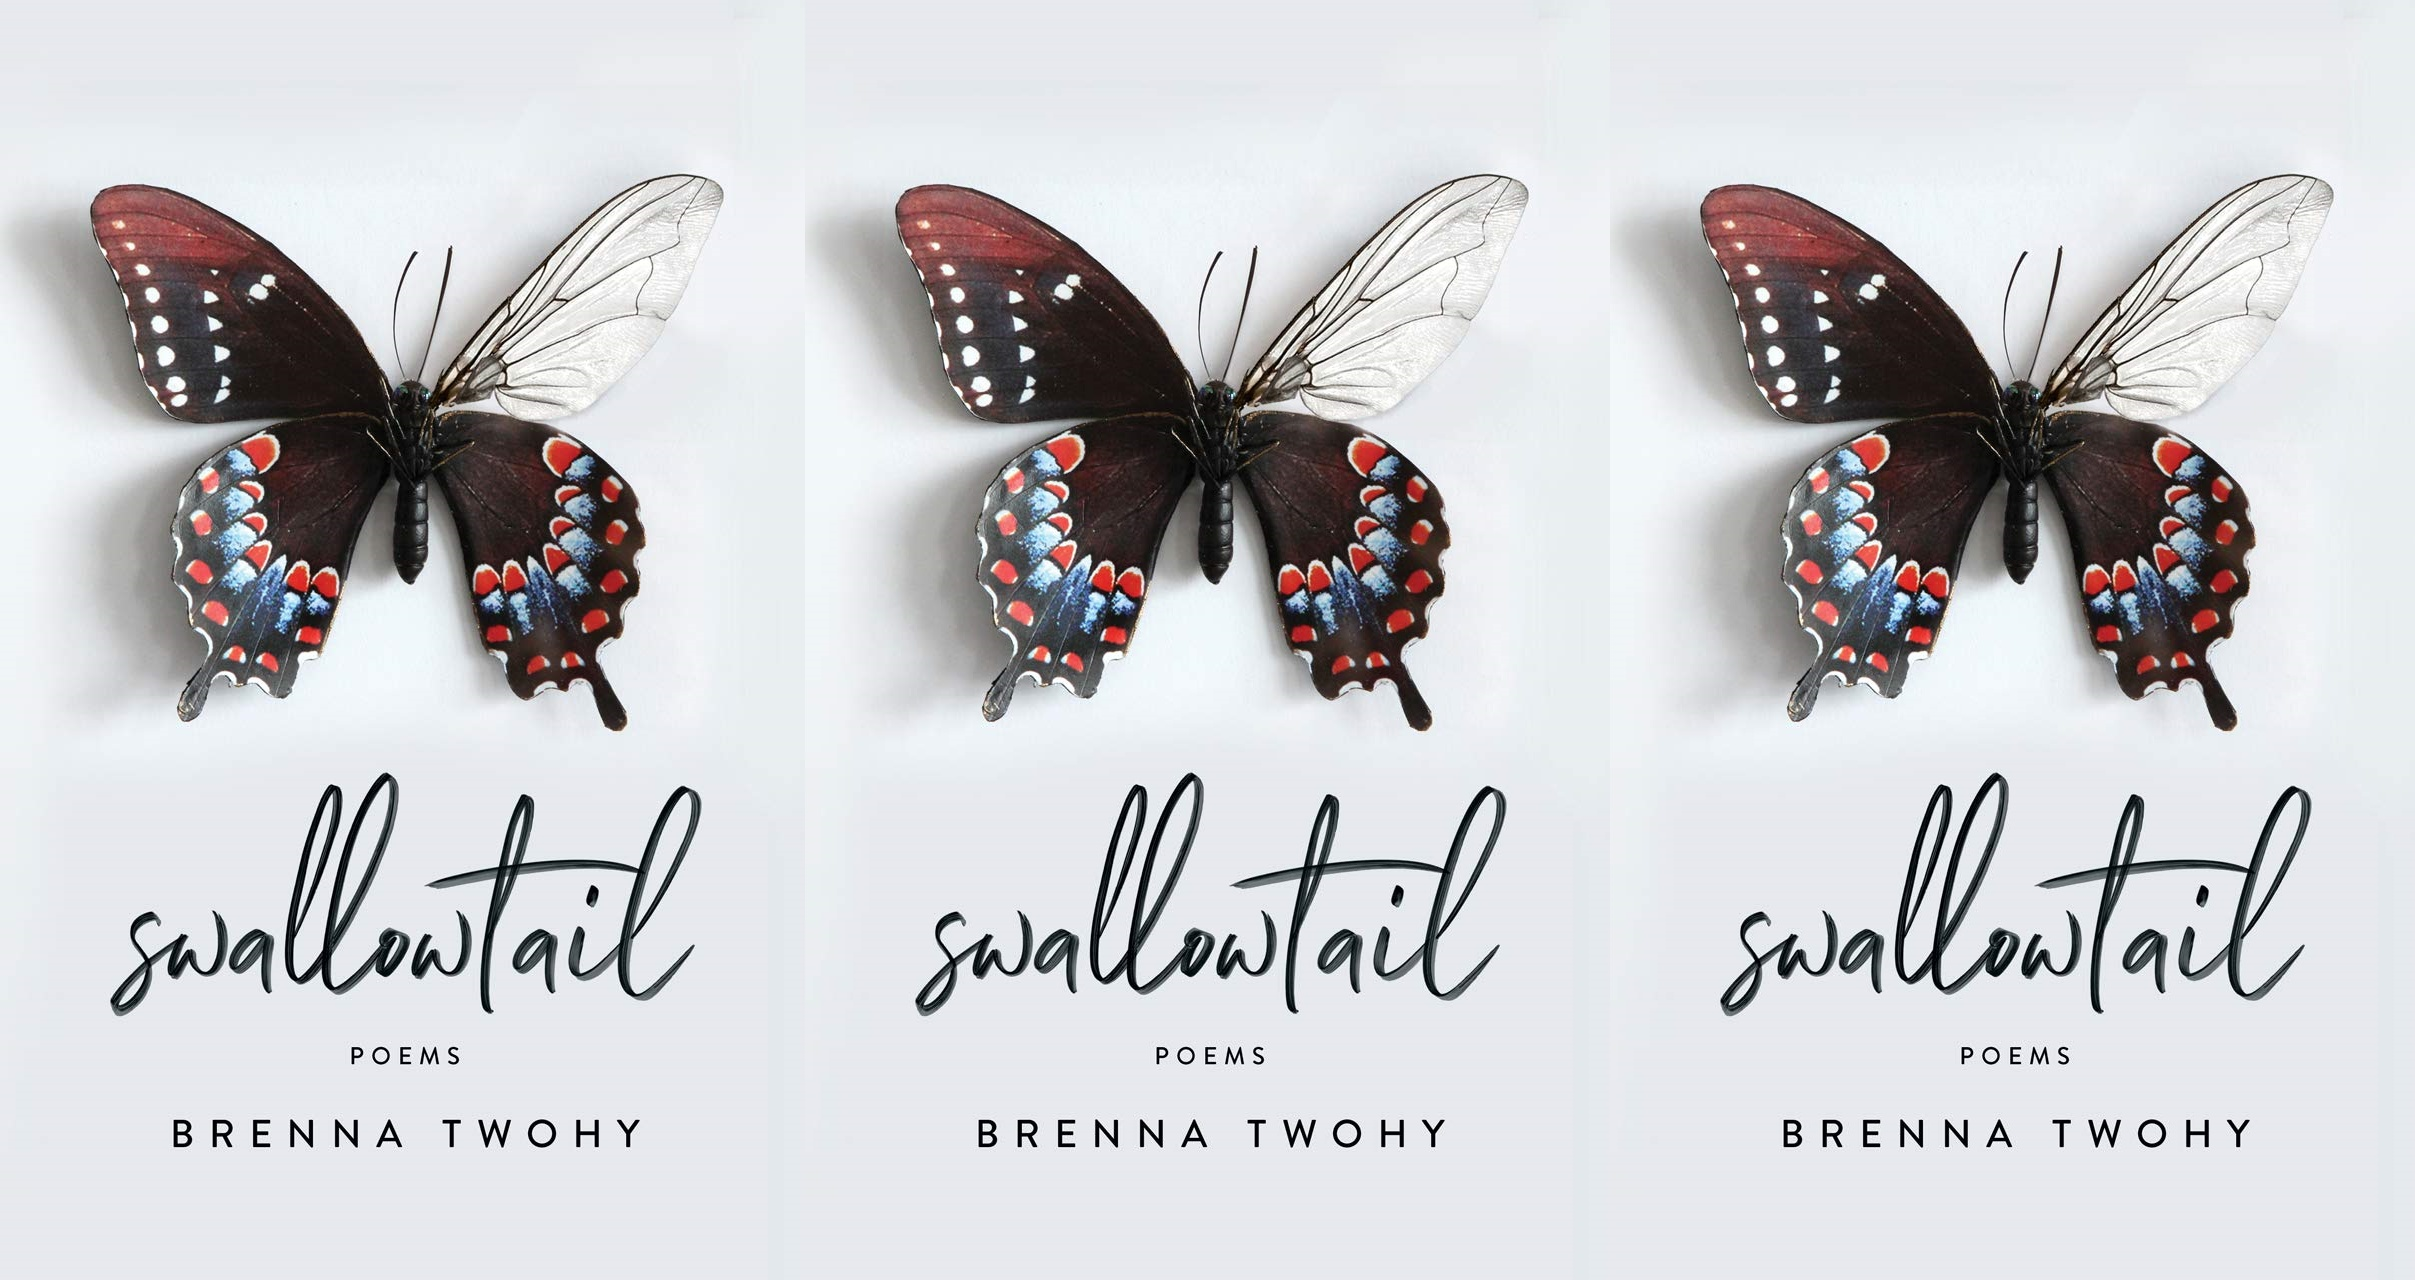 upcoming poetry collections, swallowtail by brenna twohy, books